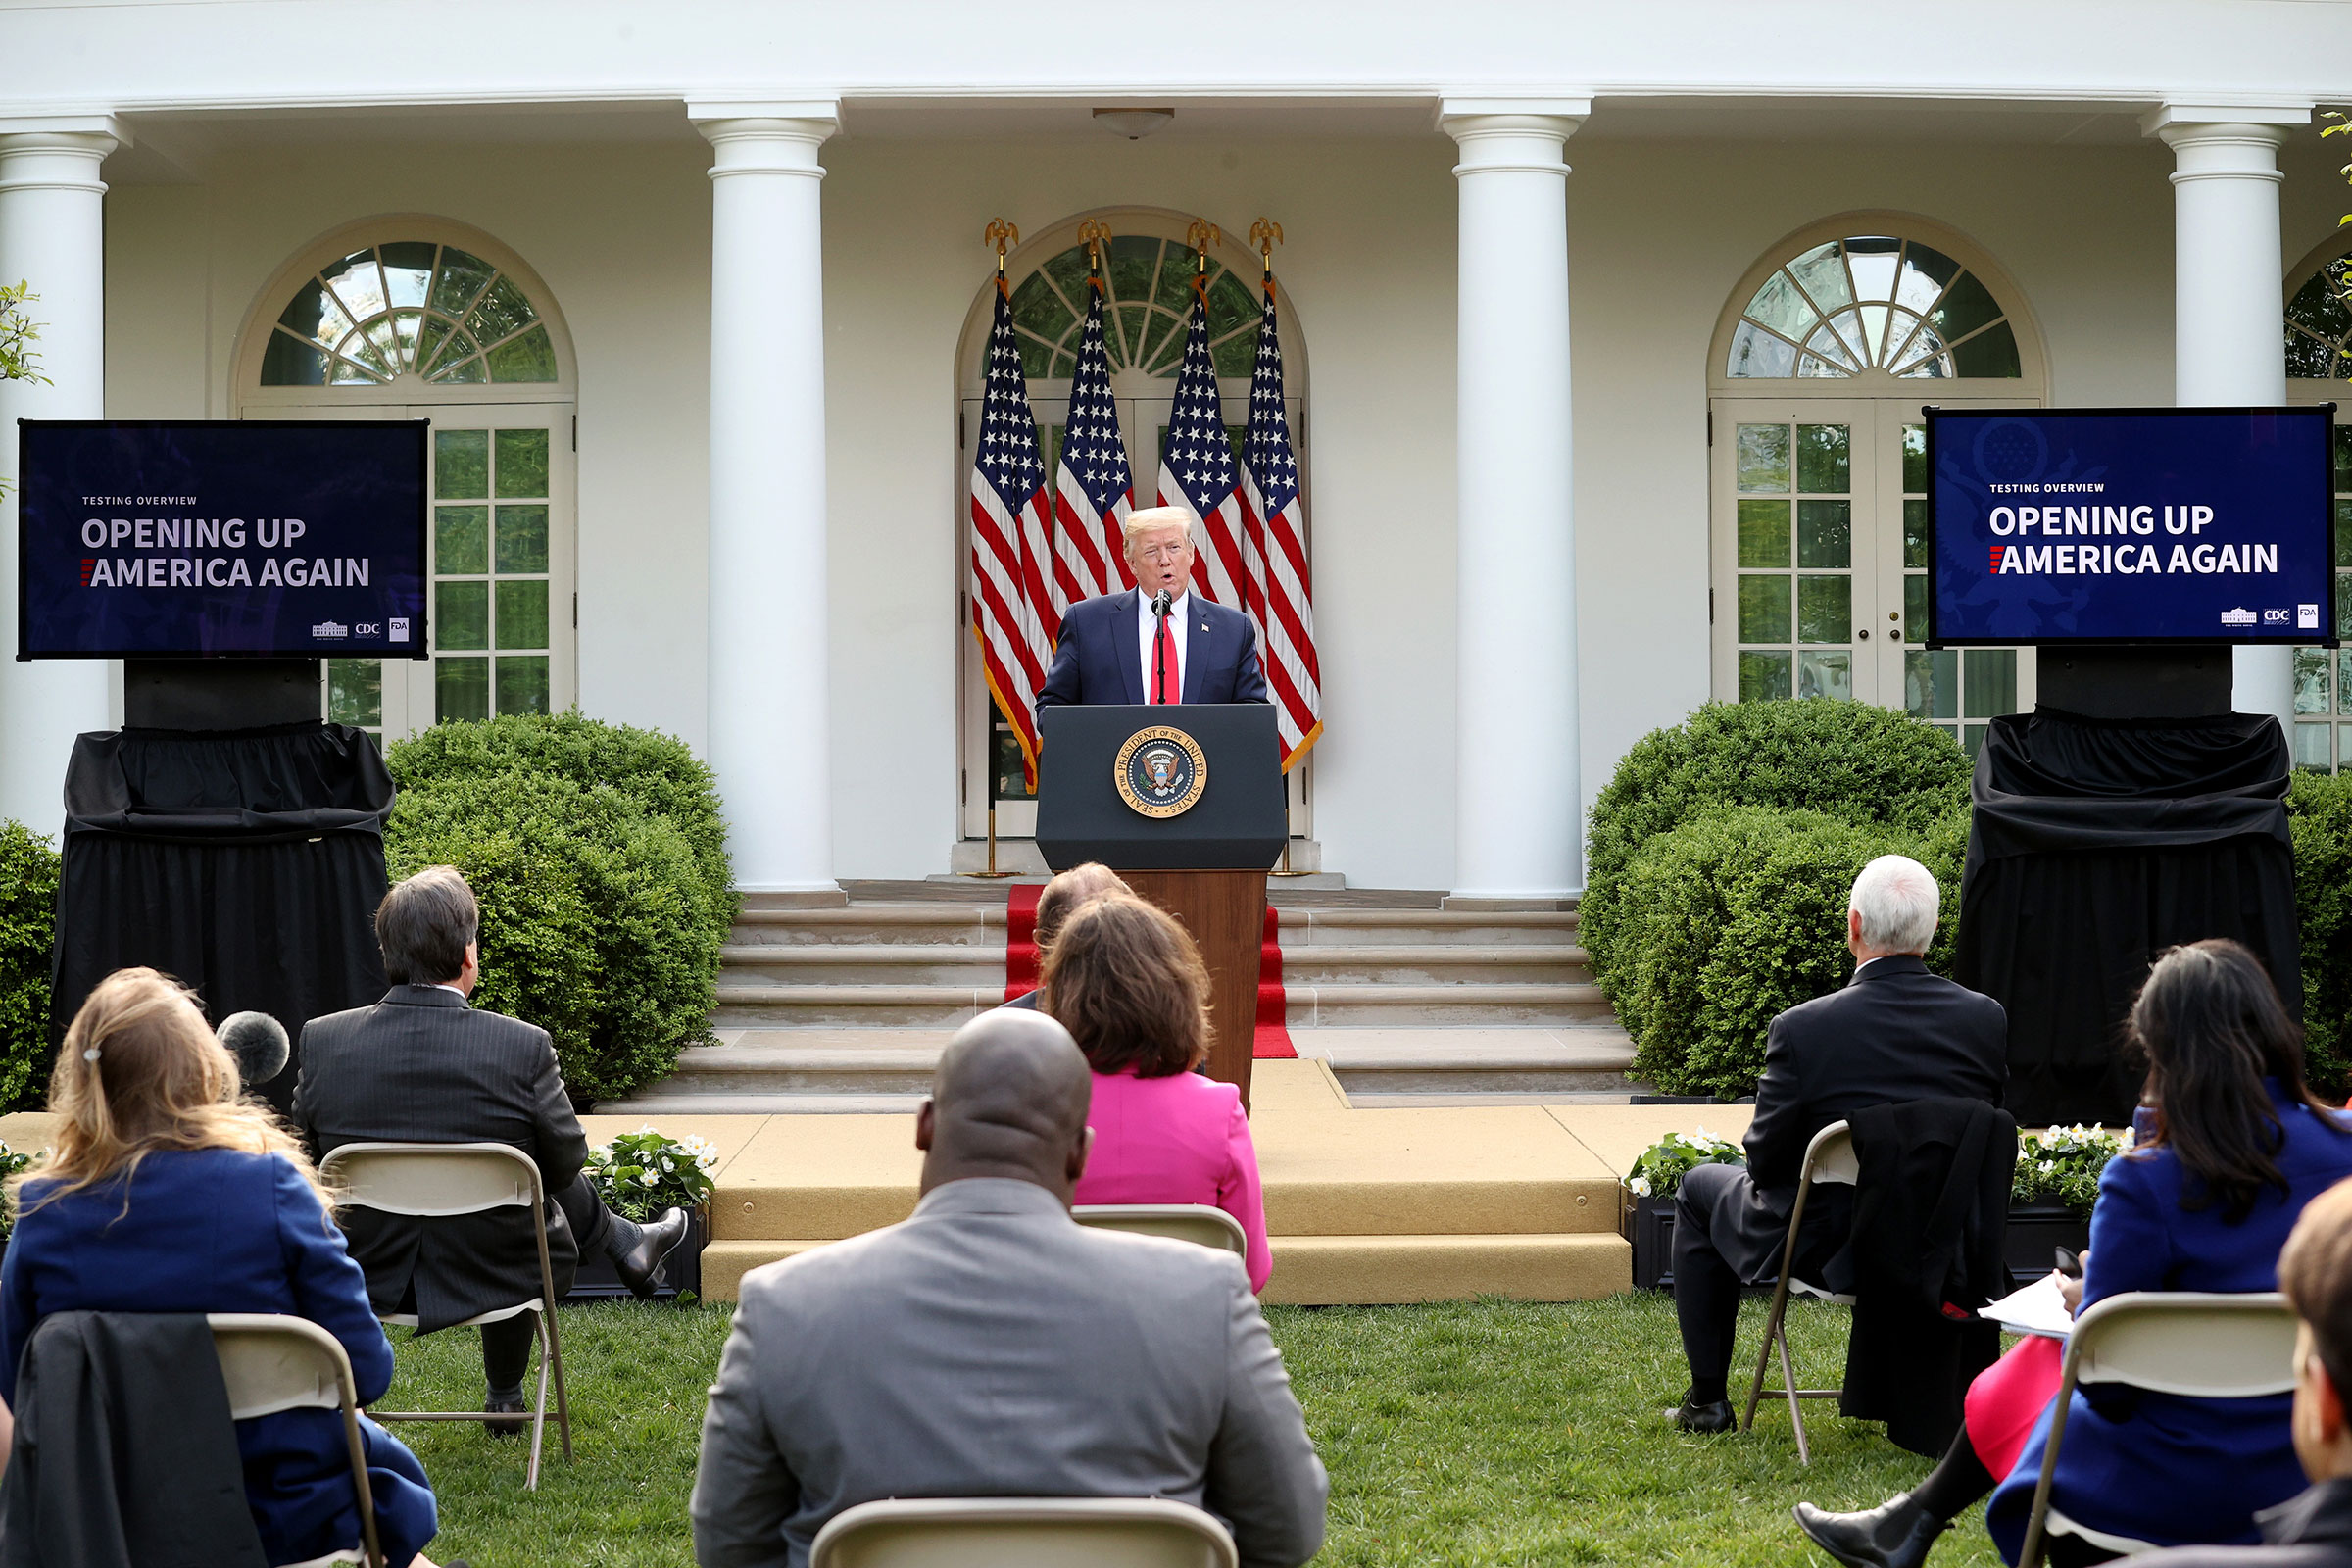 President Donald Trump speaks during the daily briefing of the coronavirus task force in the Rose Garden at the White House in Washington, on April 27, 2020.